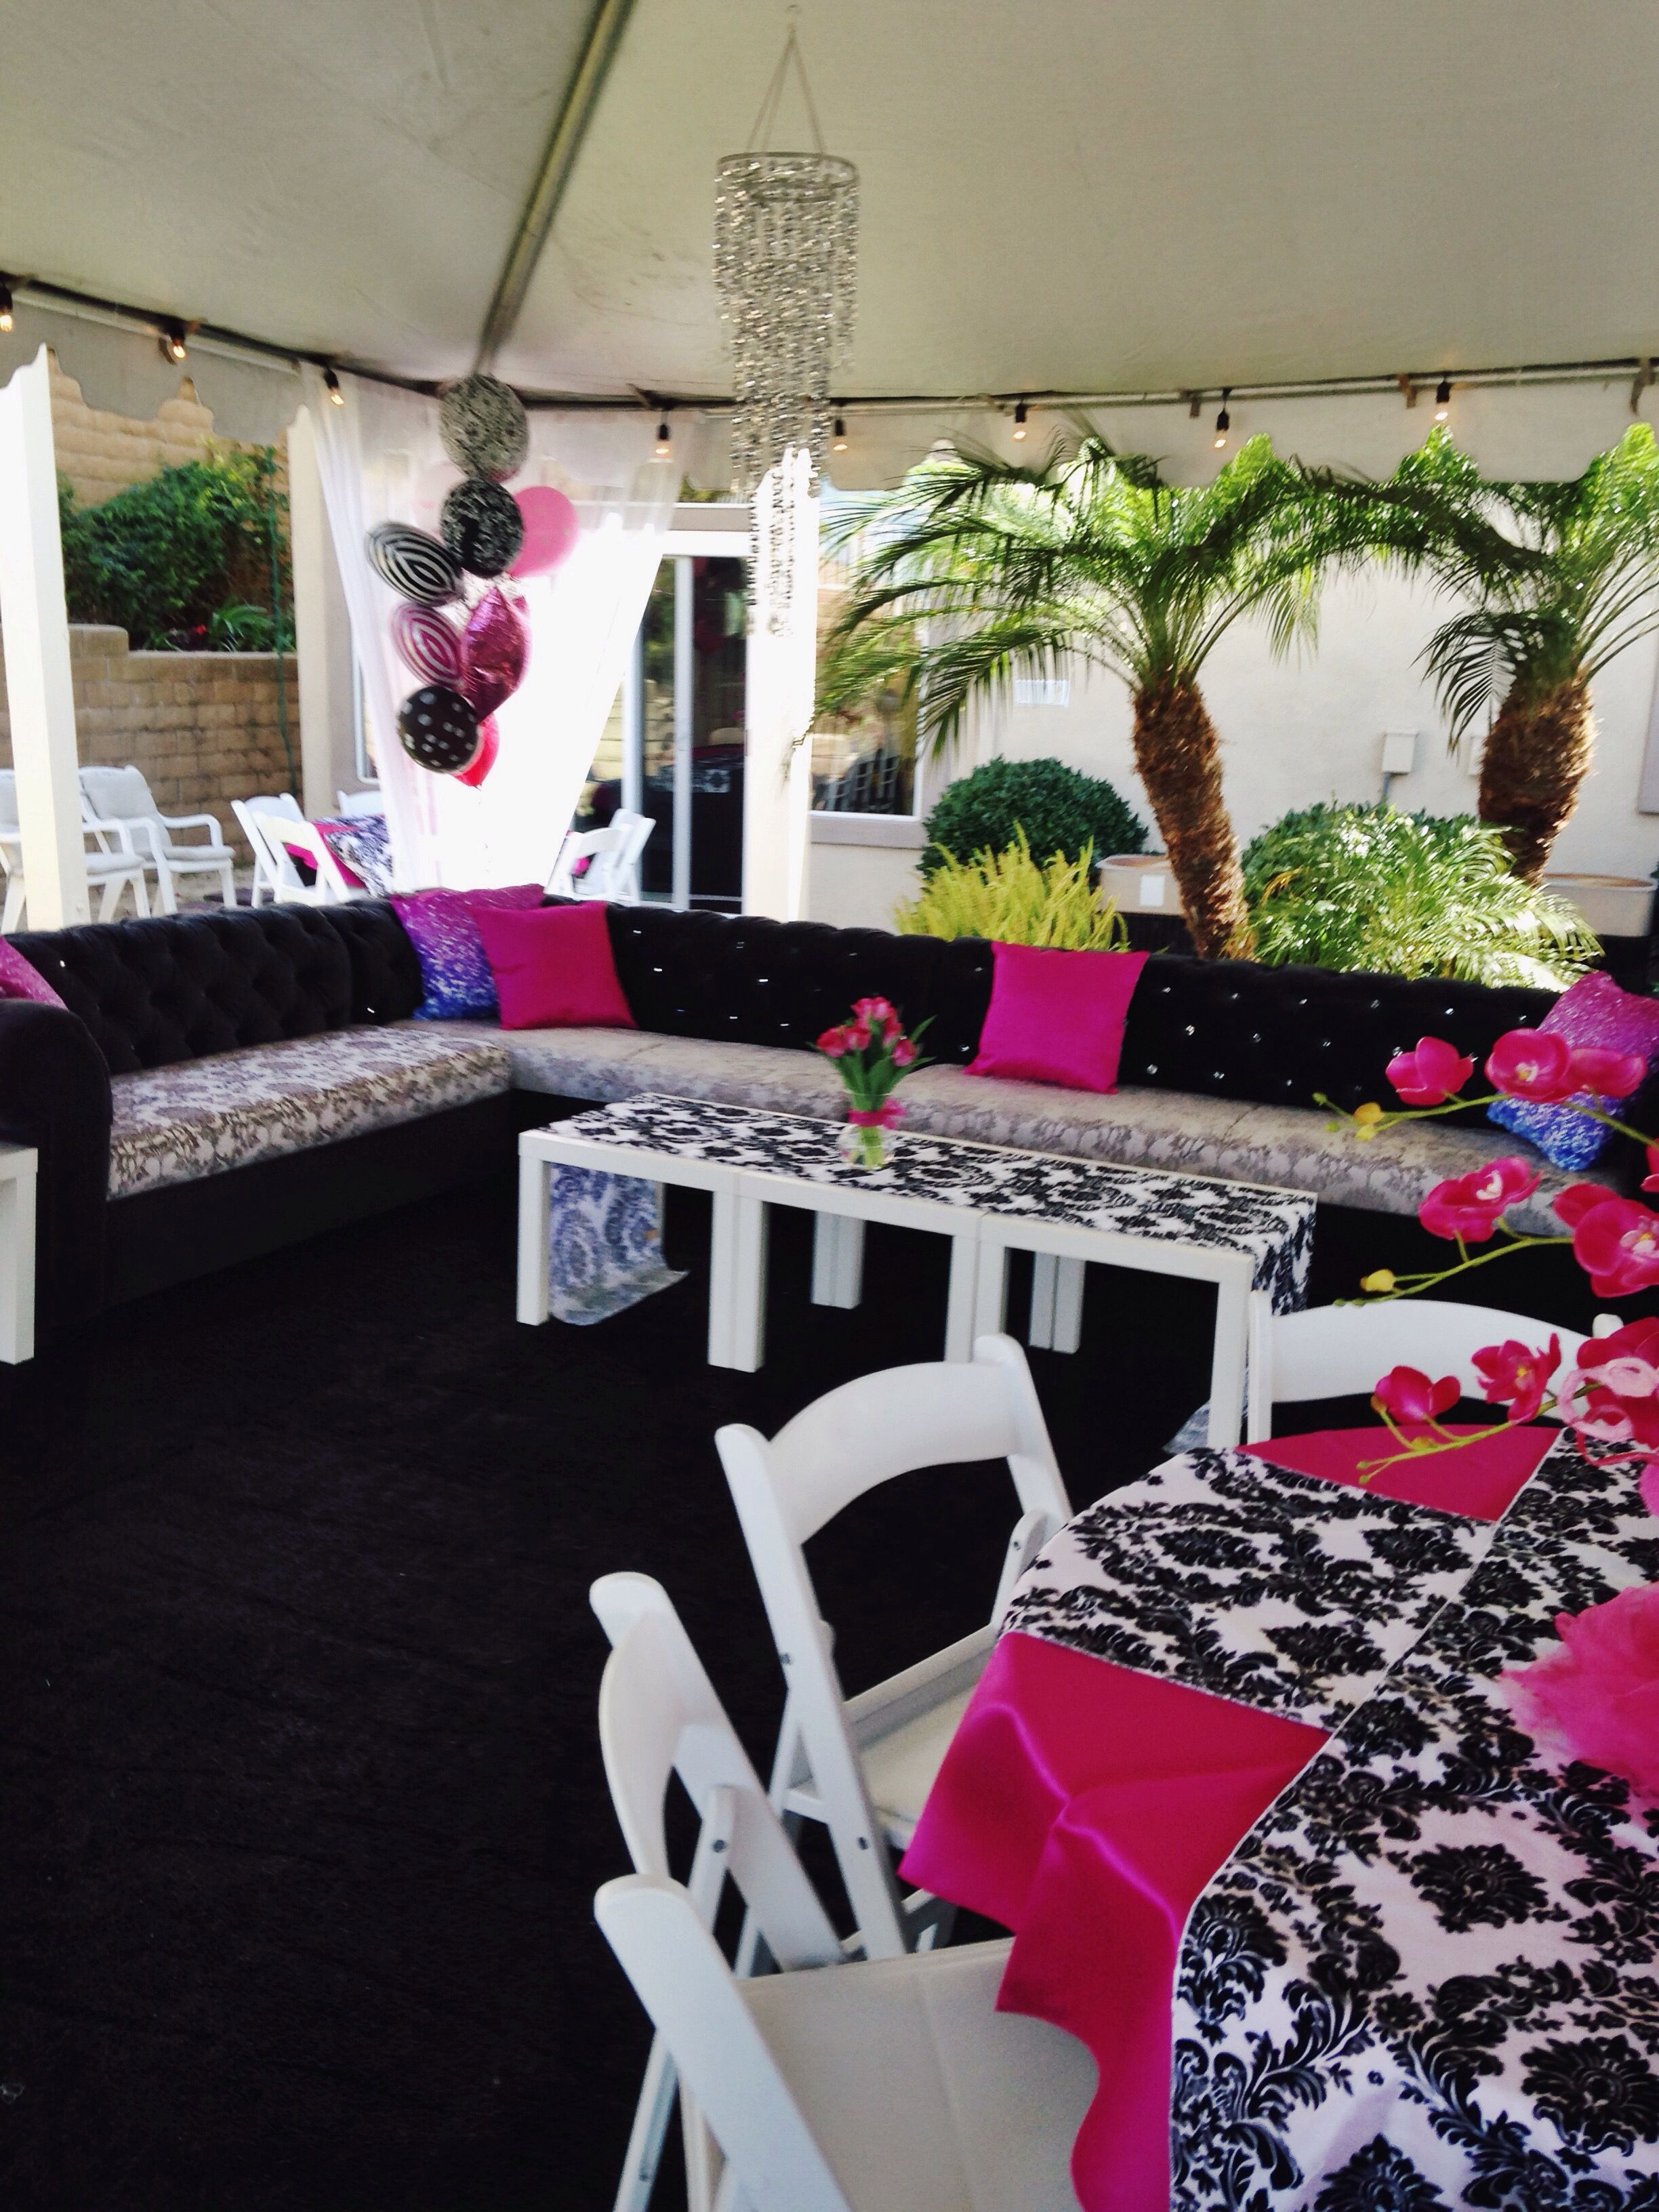 Damask lounge chair - Baby Shower Lounge Sectional Coffee Tables Black And White Damask Runners White